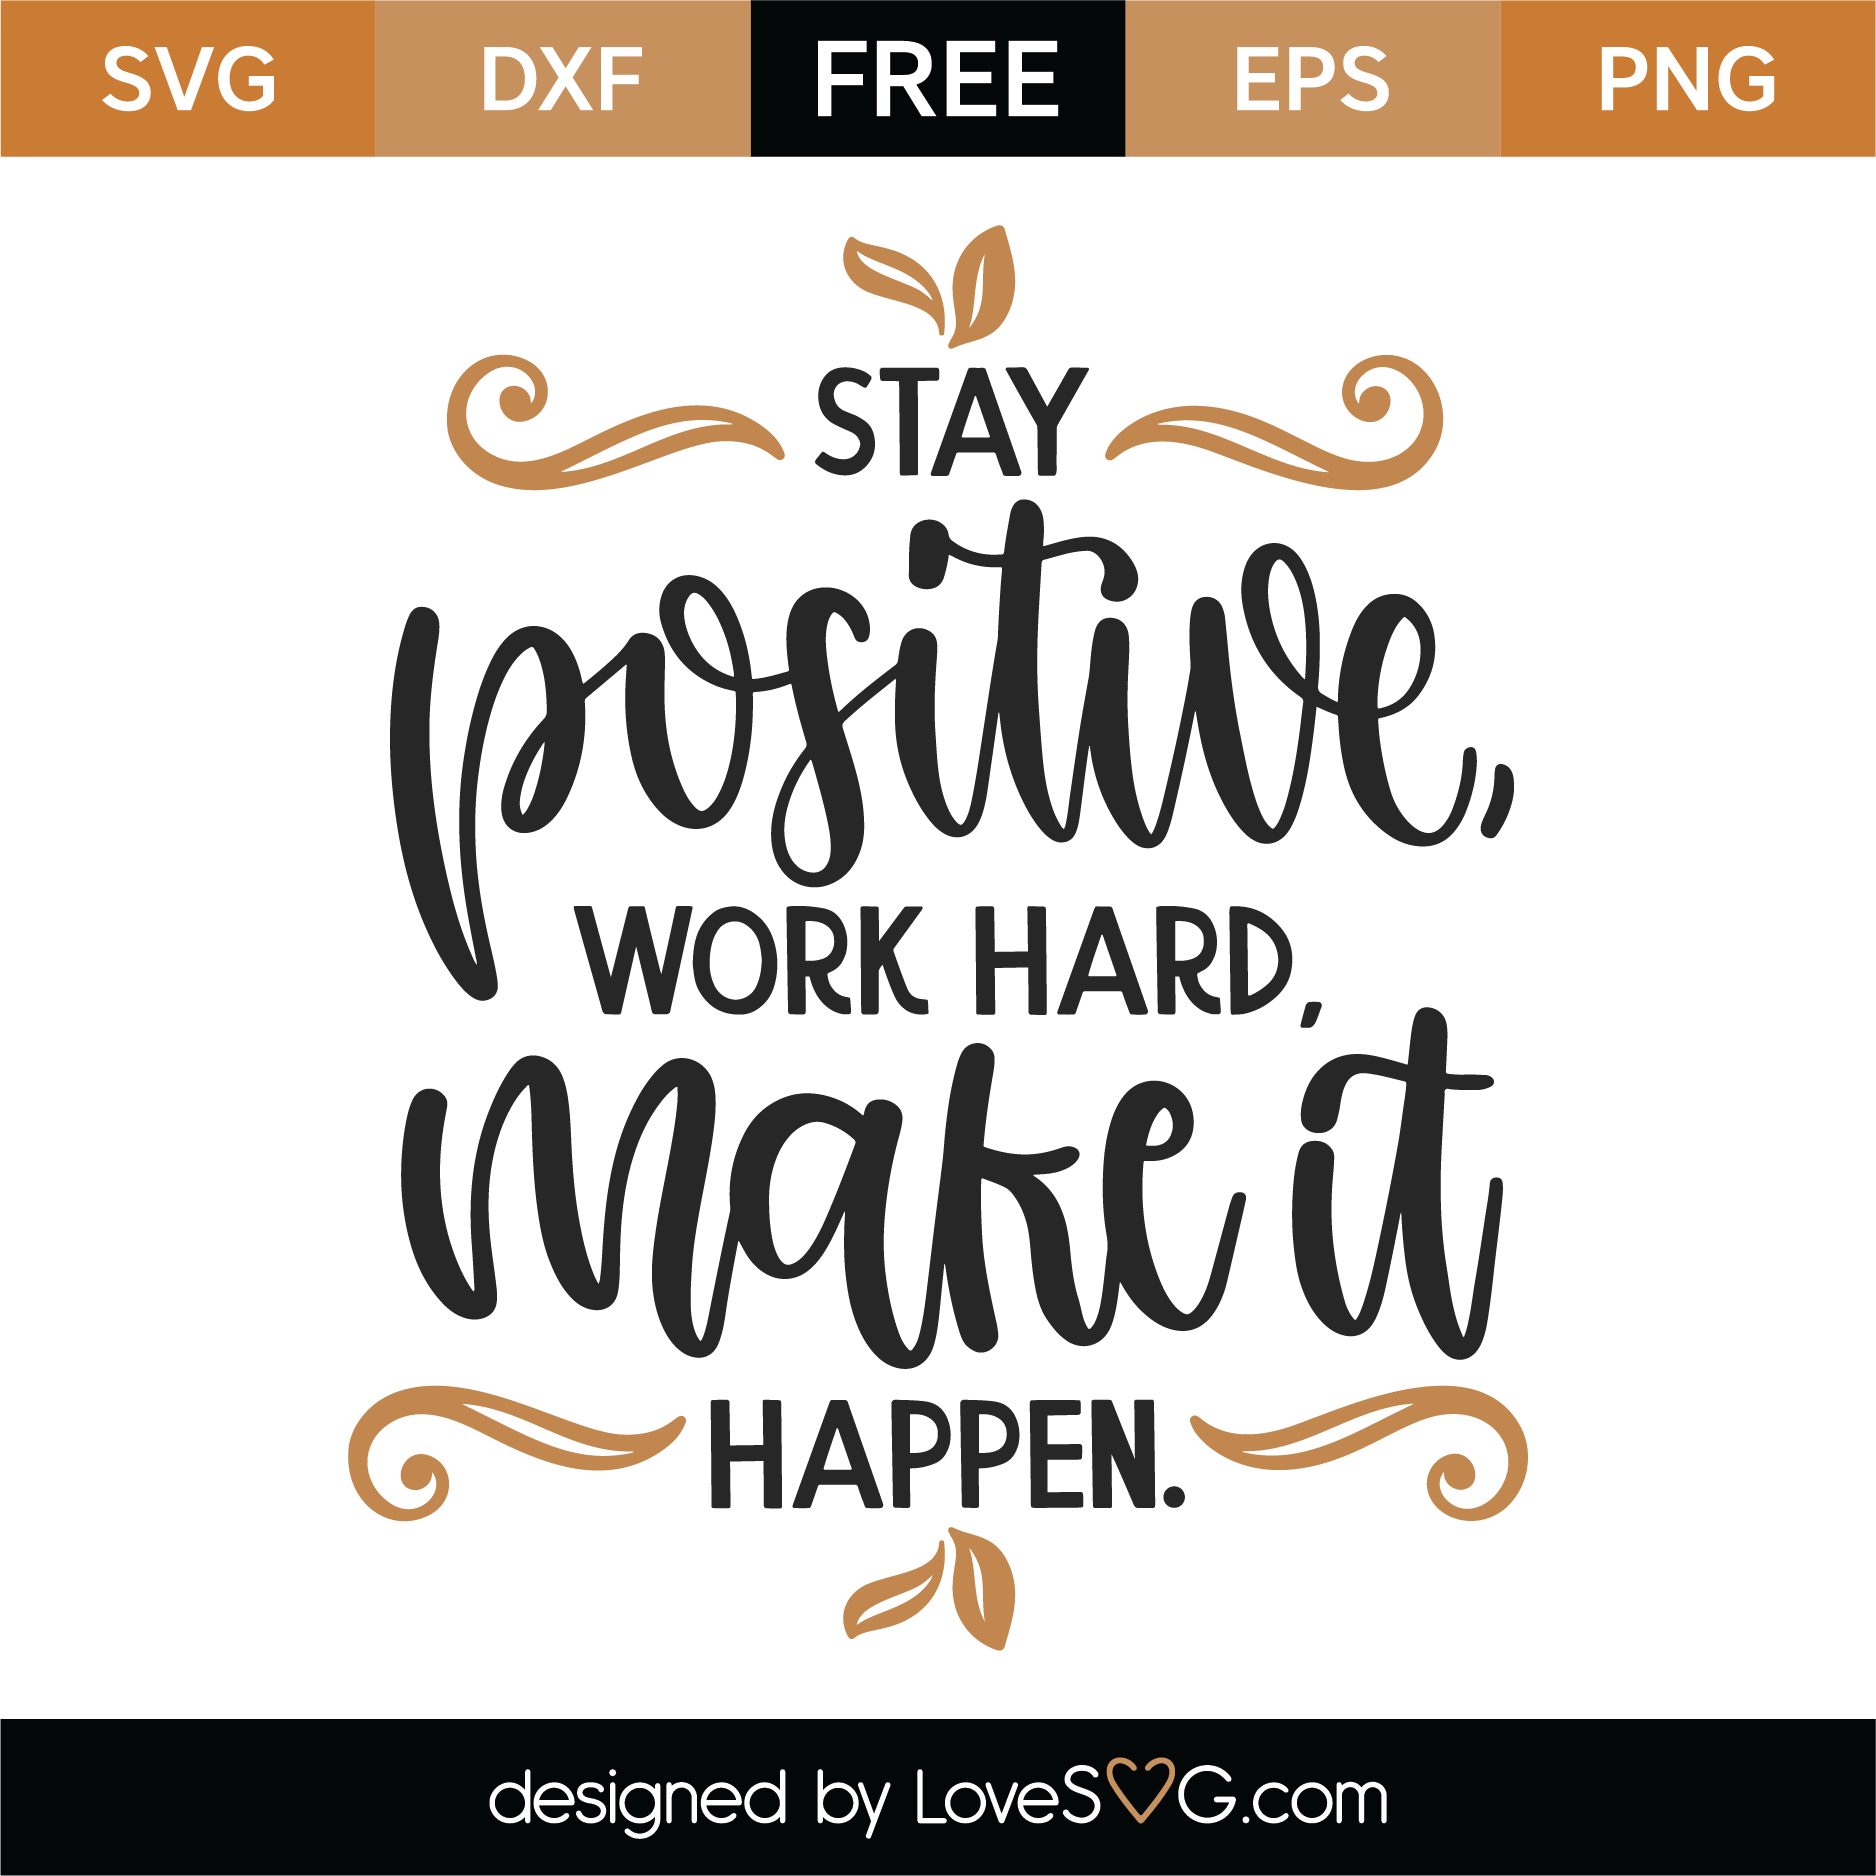 Free Stay Positive Work Hard Make It Happen SVG Cut File #quotesaboutstayingpositive Download Stay Positive Work Hard Make It Happen SVG Cut File and create your personal DIY project with these beautiful quotes or designs. #quotesaboutstayingpositive